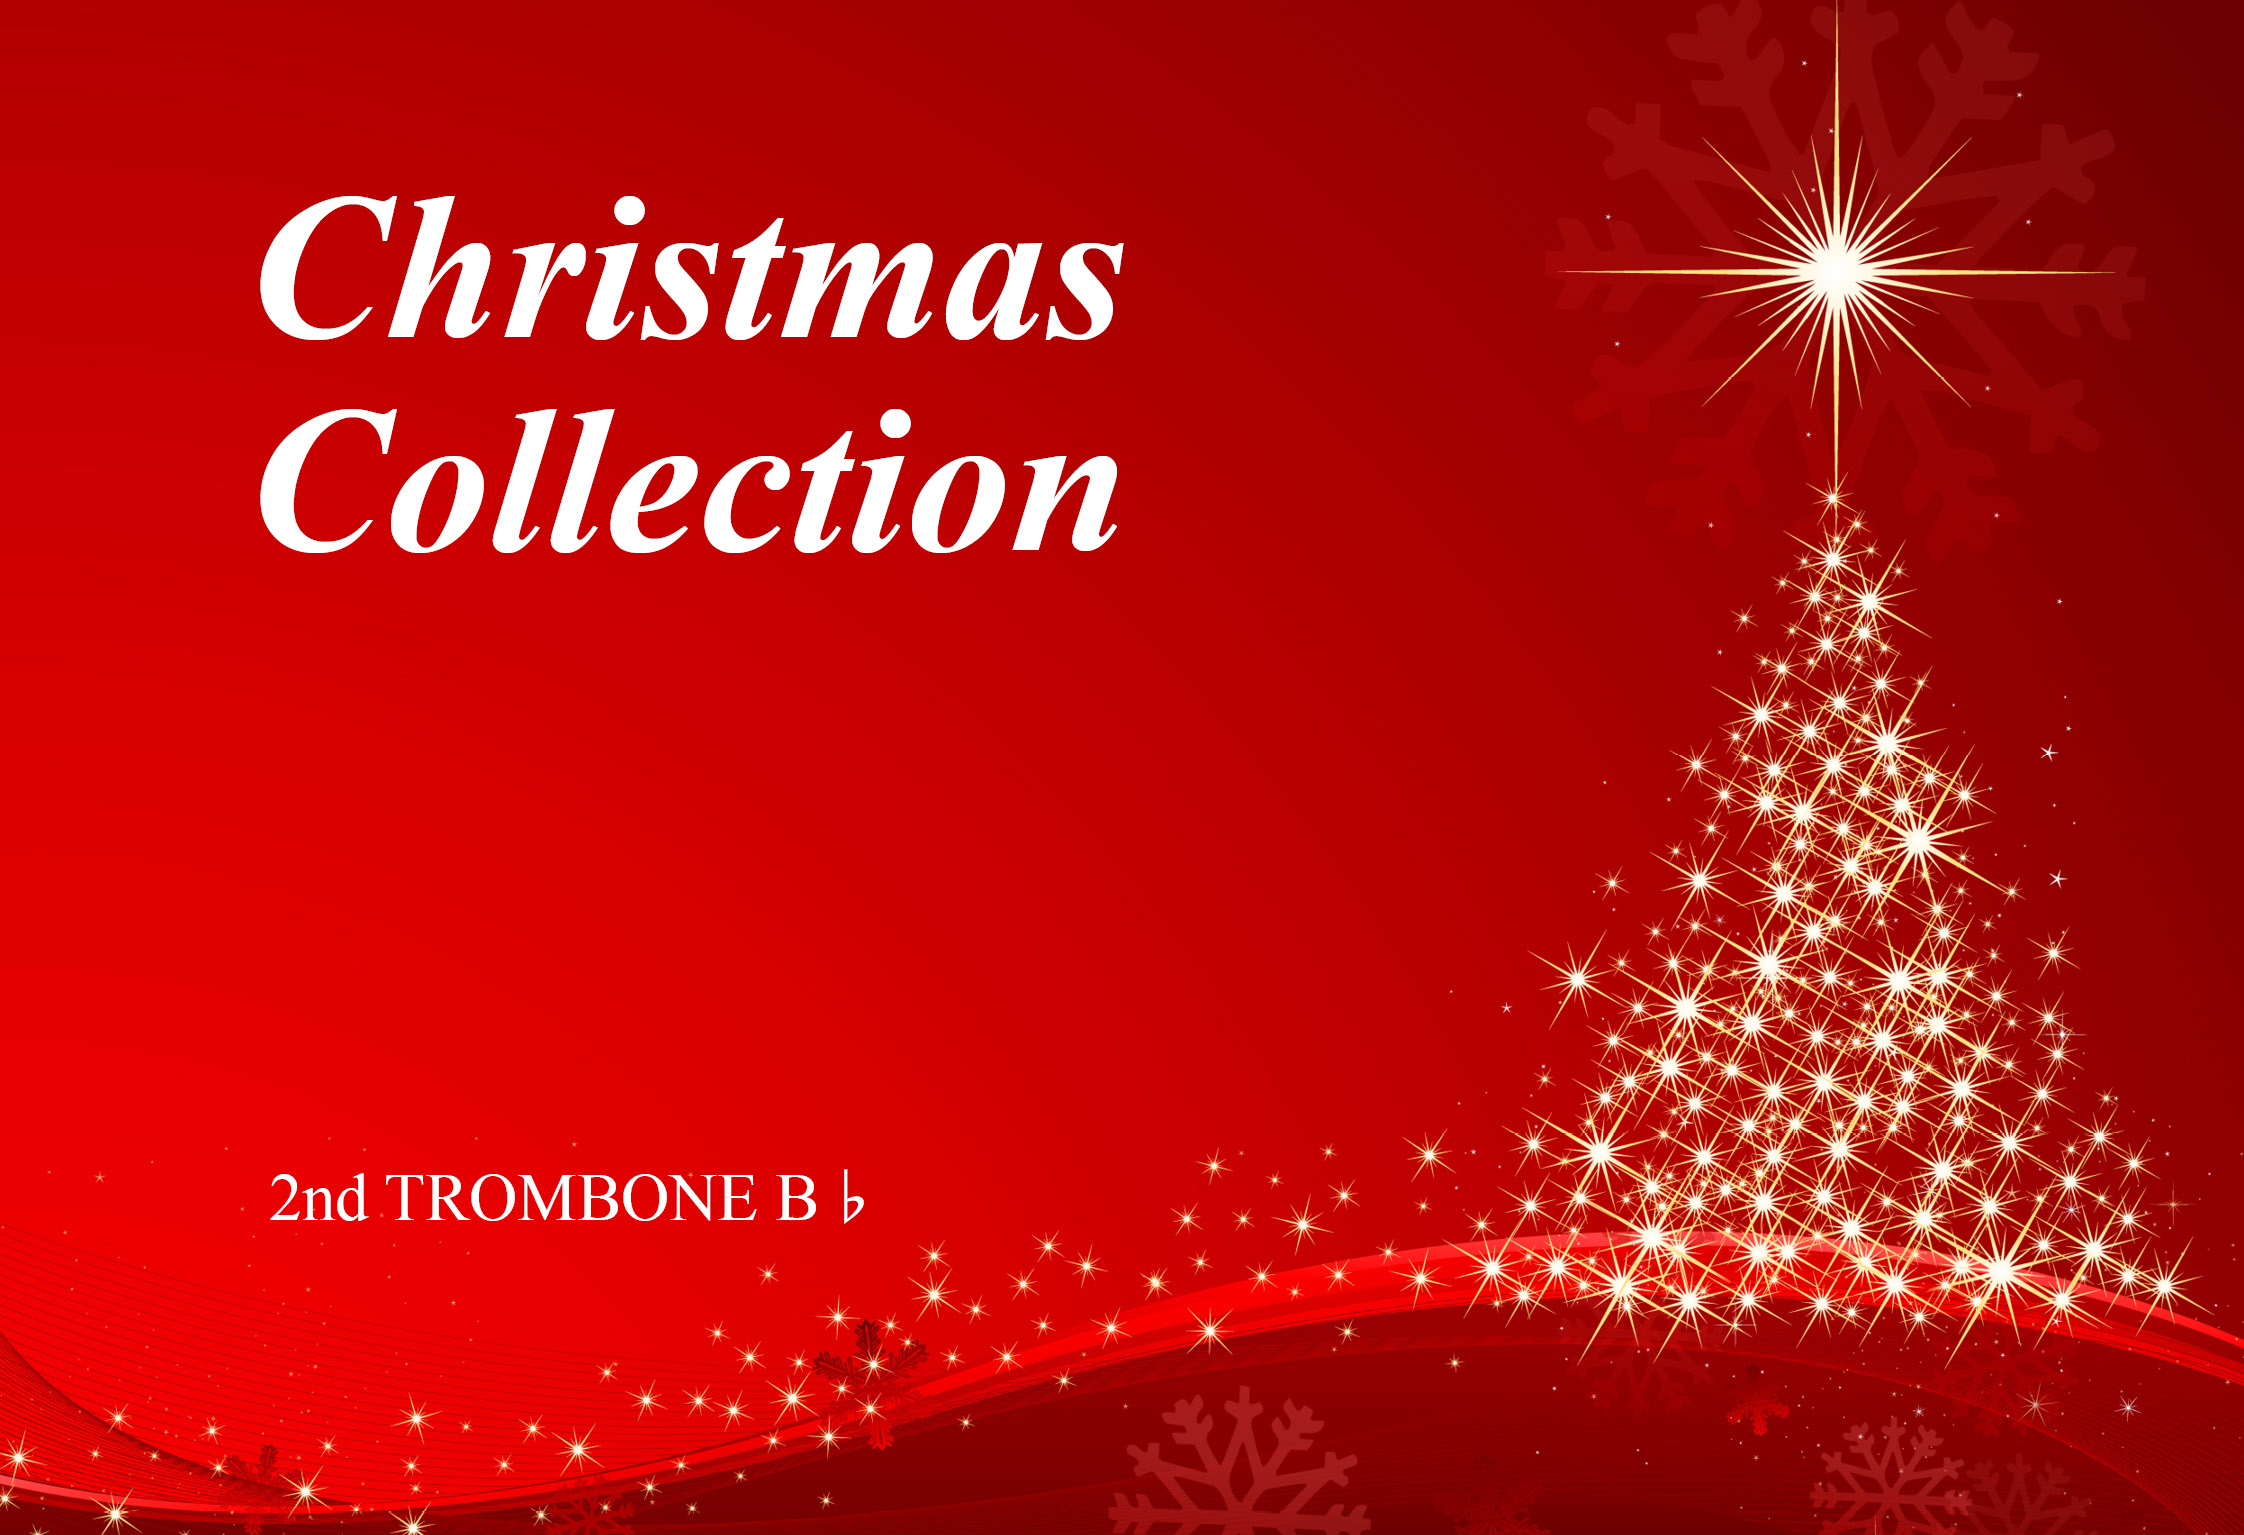 Christmas Collection - 2nd Trombone Bb - Large Print A4